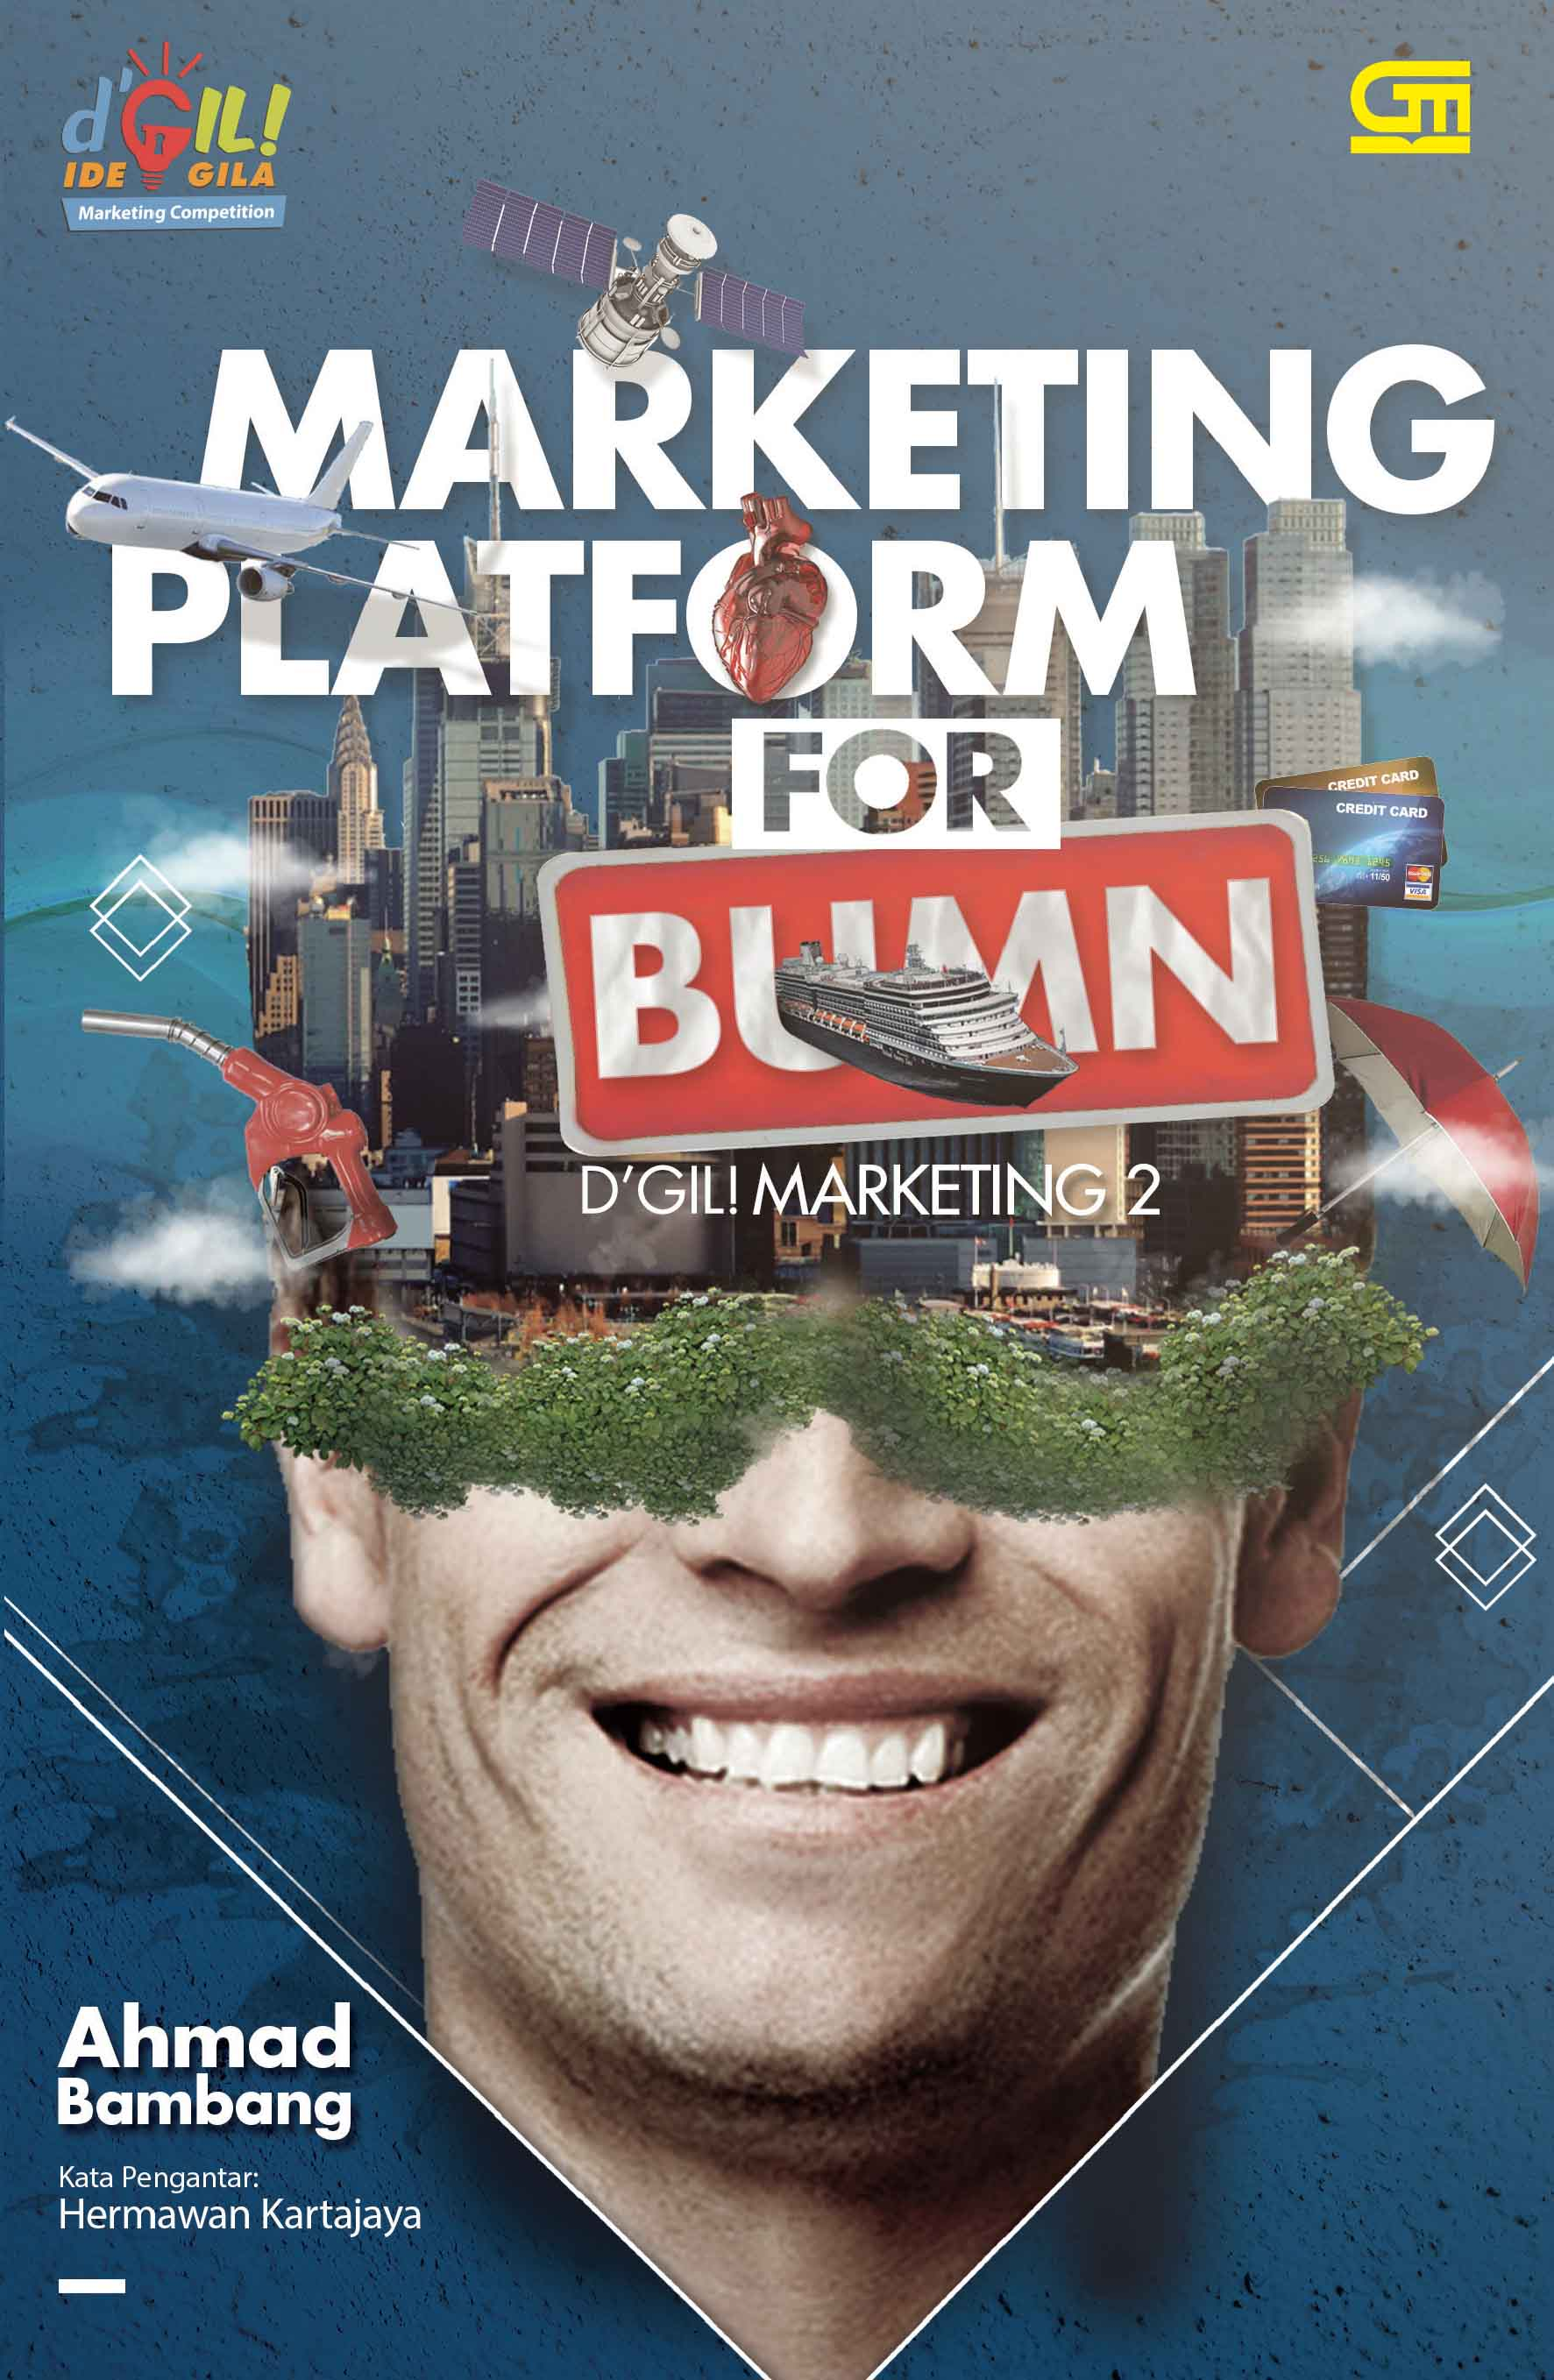 Marketing Platform for BUMN: D  Gil! Marketing 2